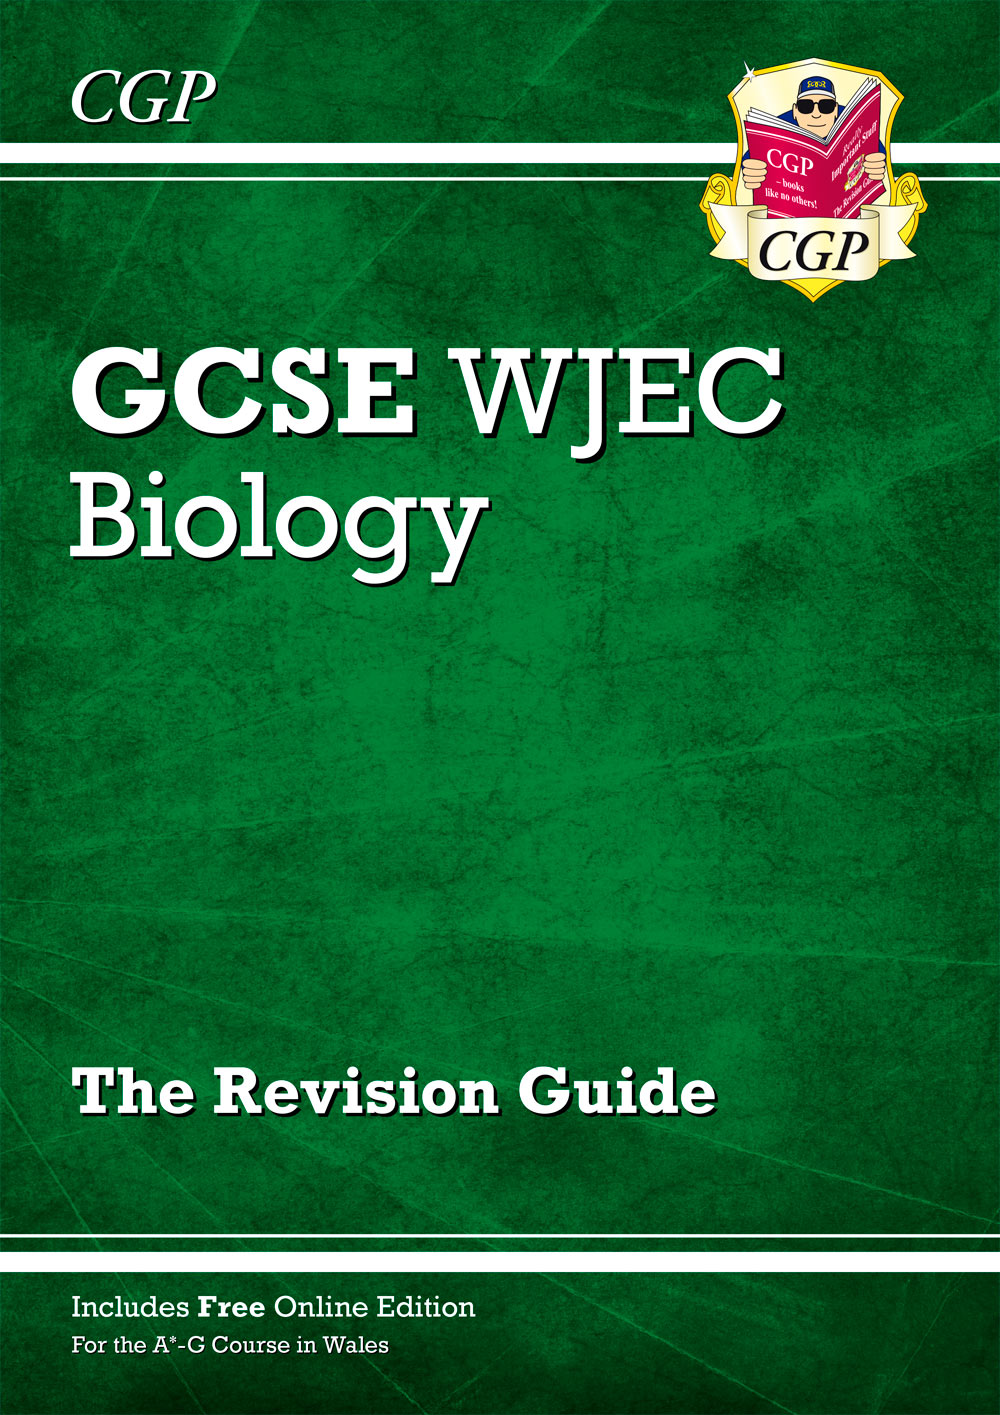 BWR41 - New WJEC GCSE Biology Revision Guide (with Online Edition)